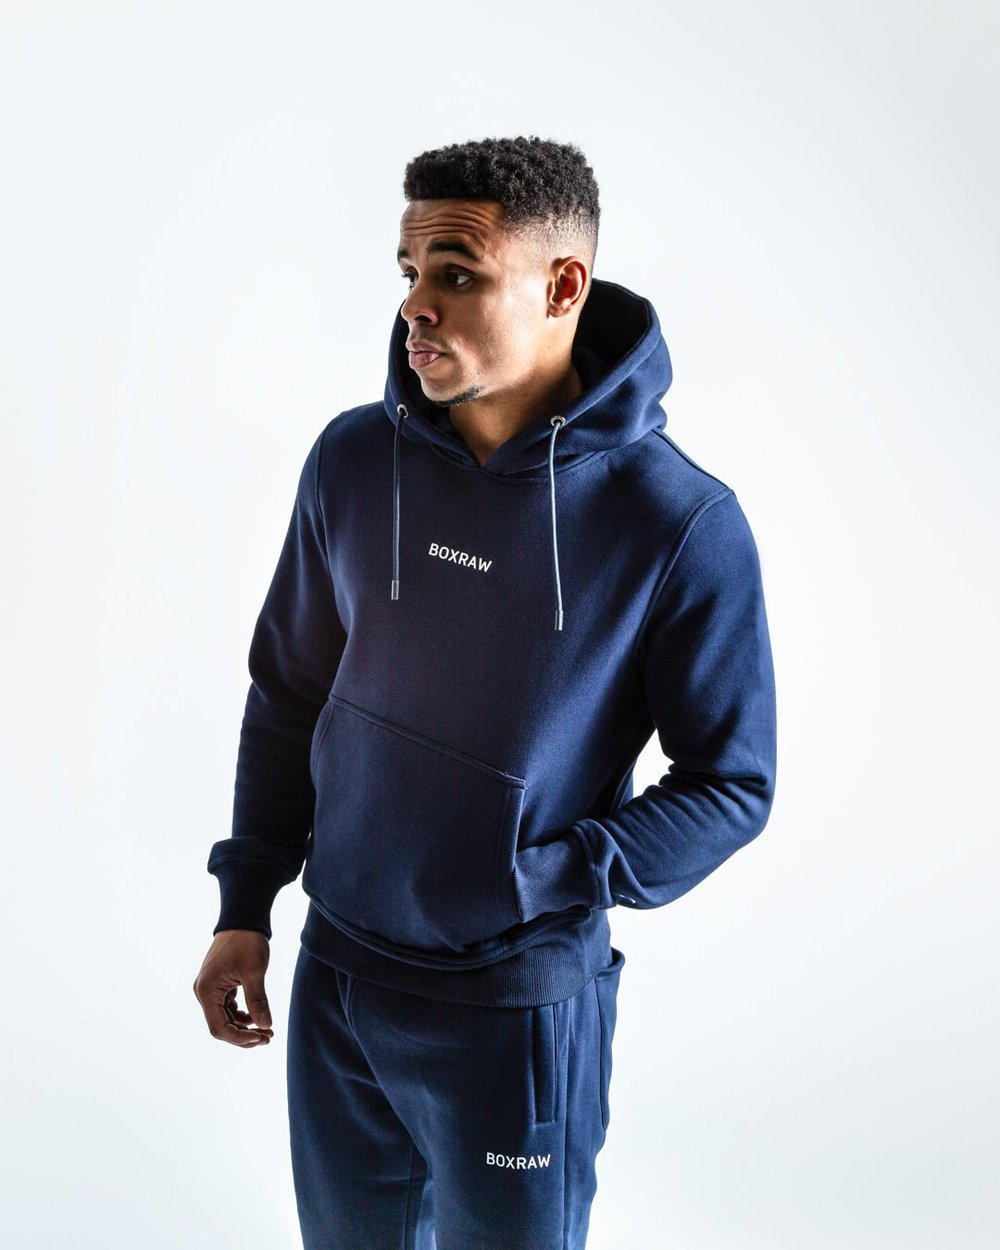 JOHNSON HOODIE - NAVY - Pandemic Fight Gear Inc.